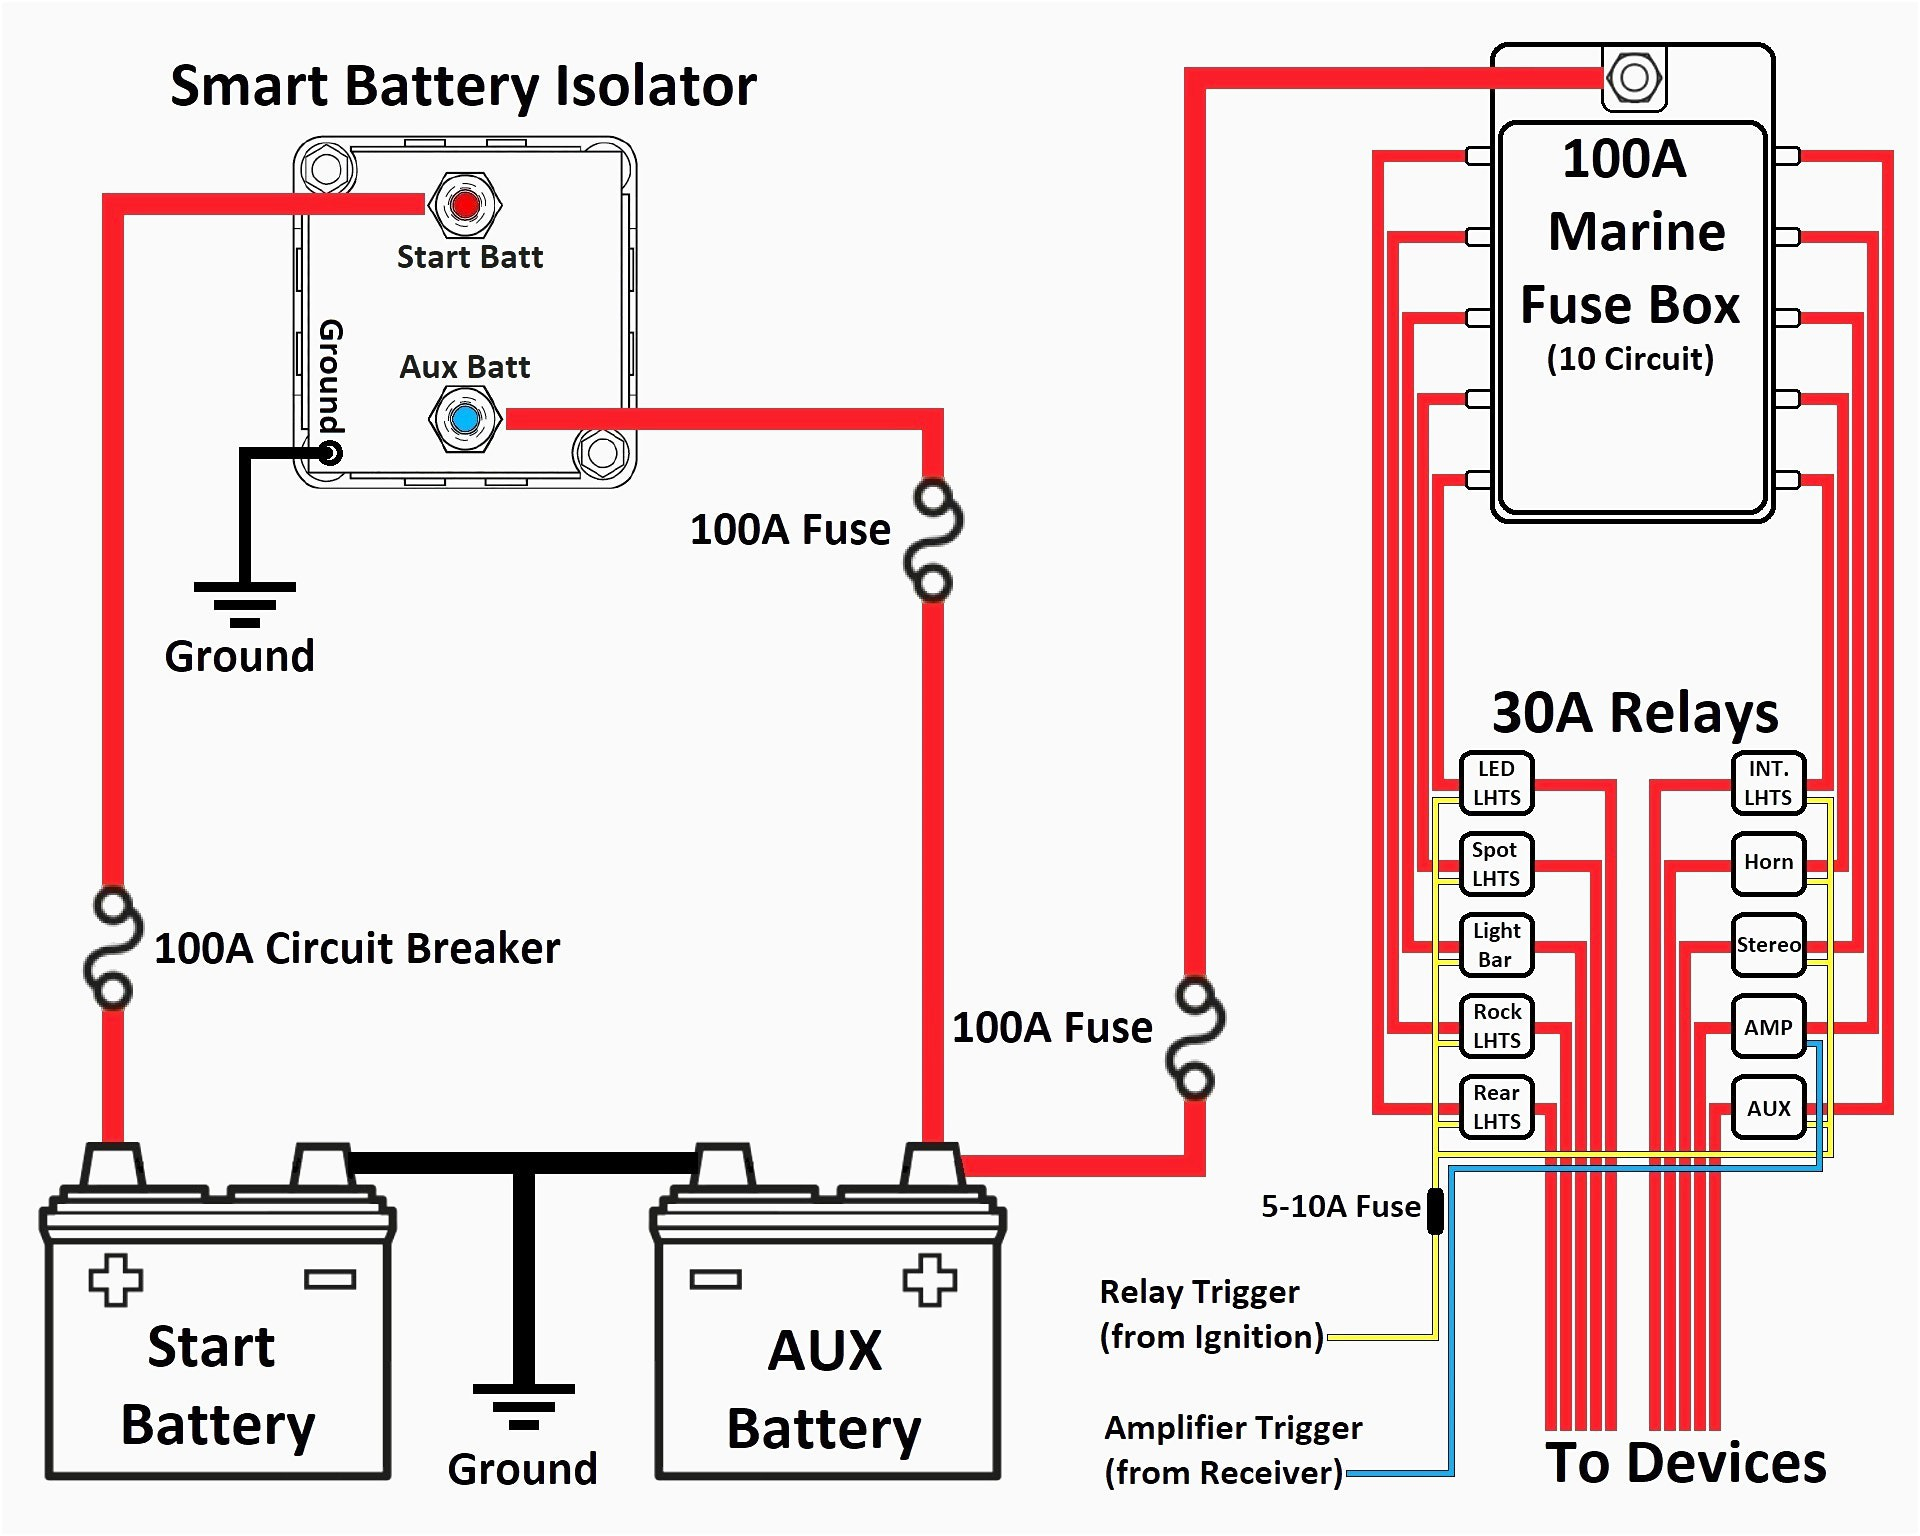 multi battery isolator wiring diagram Download-Battery isolator Wiring Diagram New Battery isolator Wiring Diagram Webtor Ideas Collection Battery 18-h